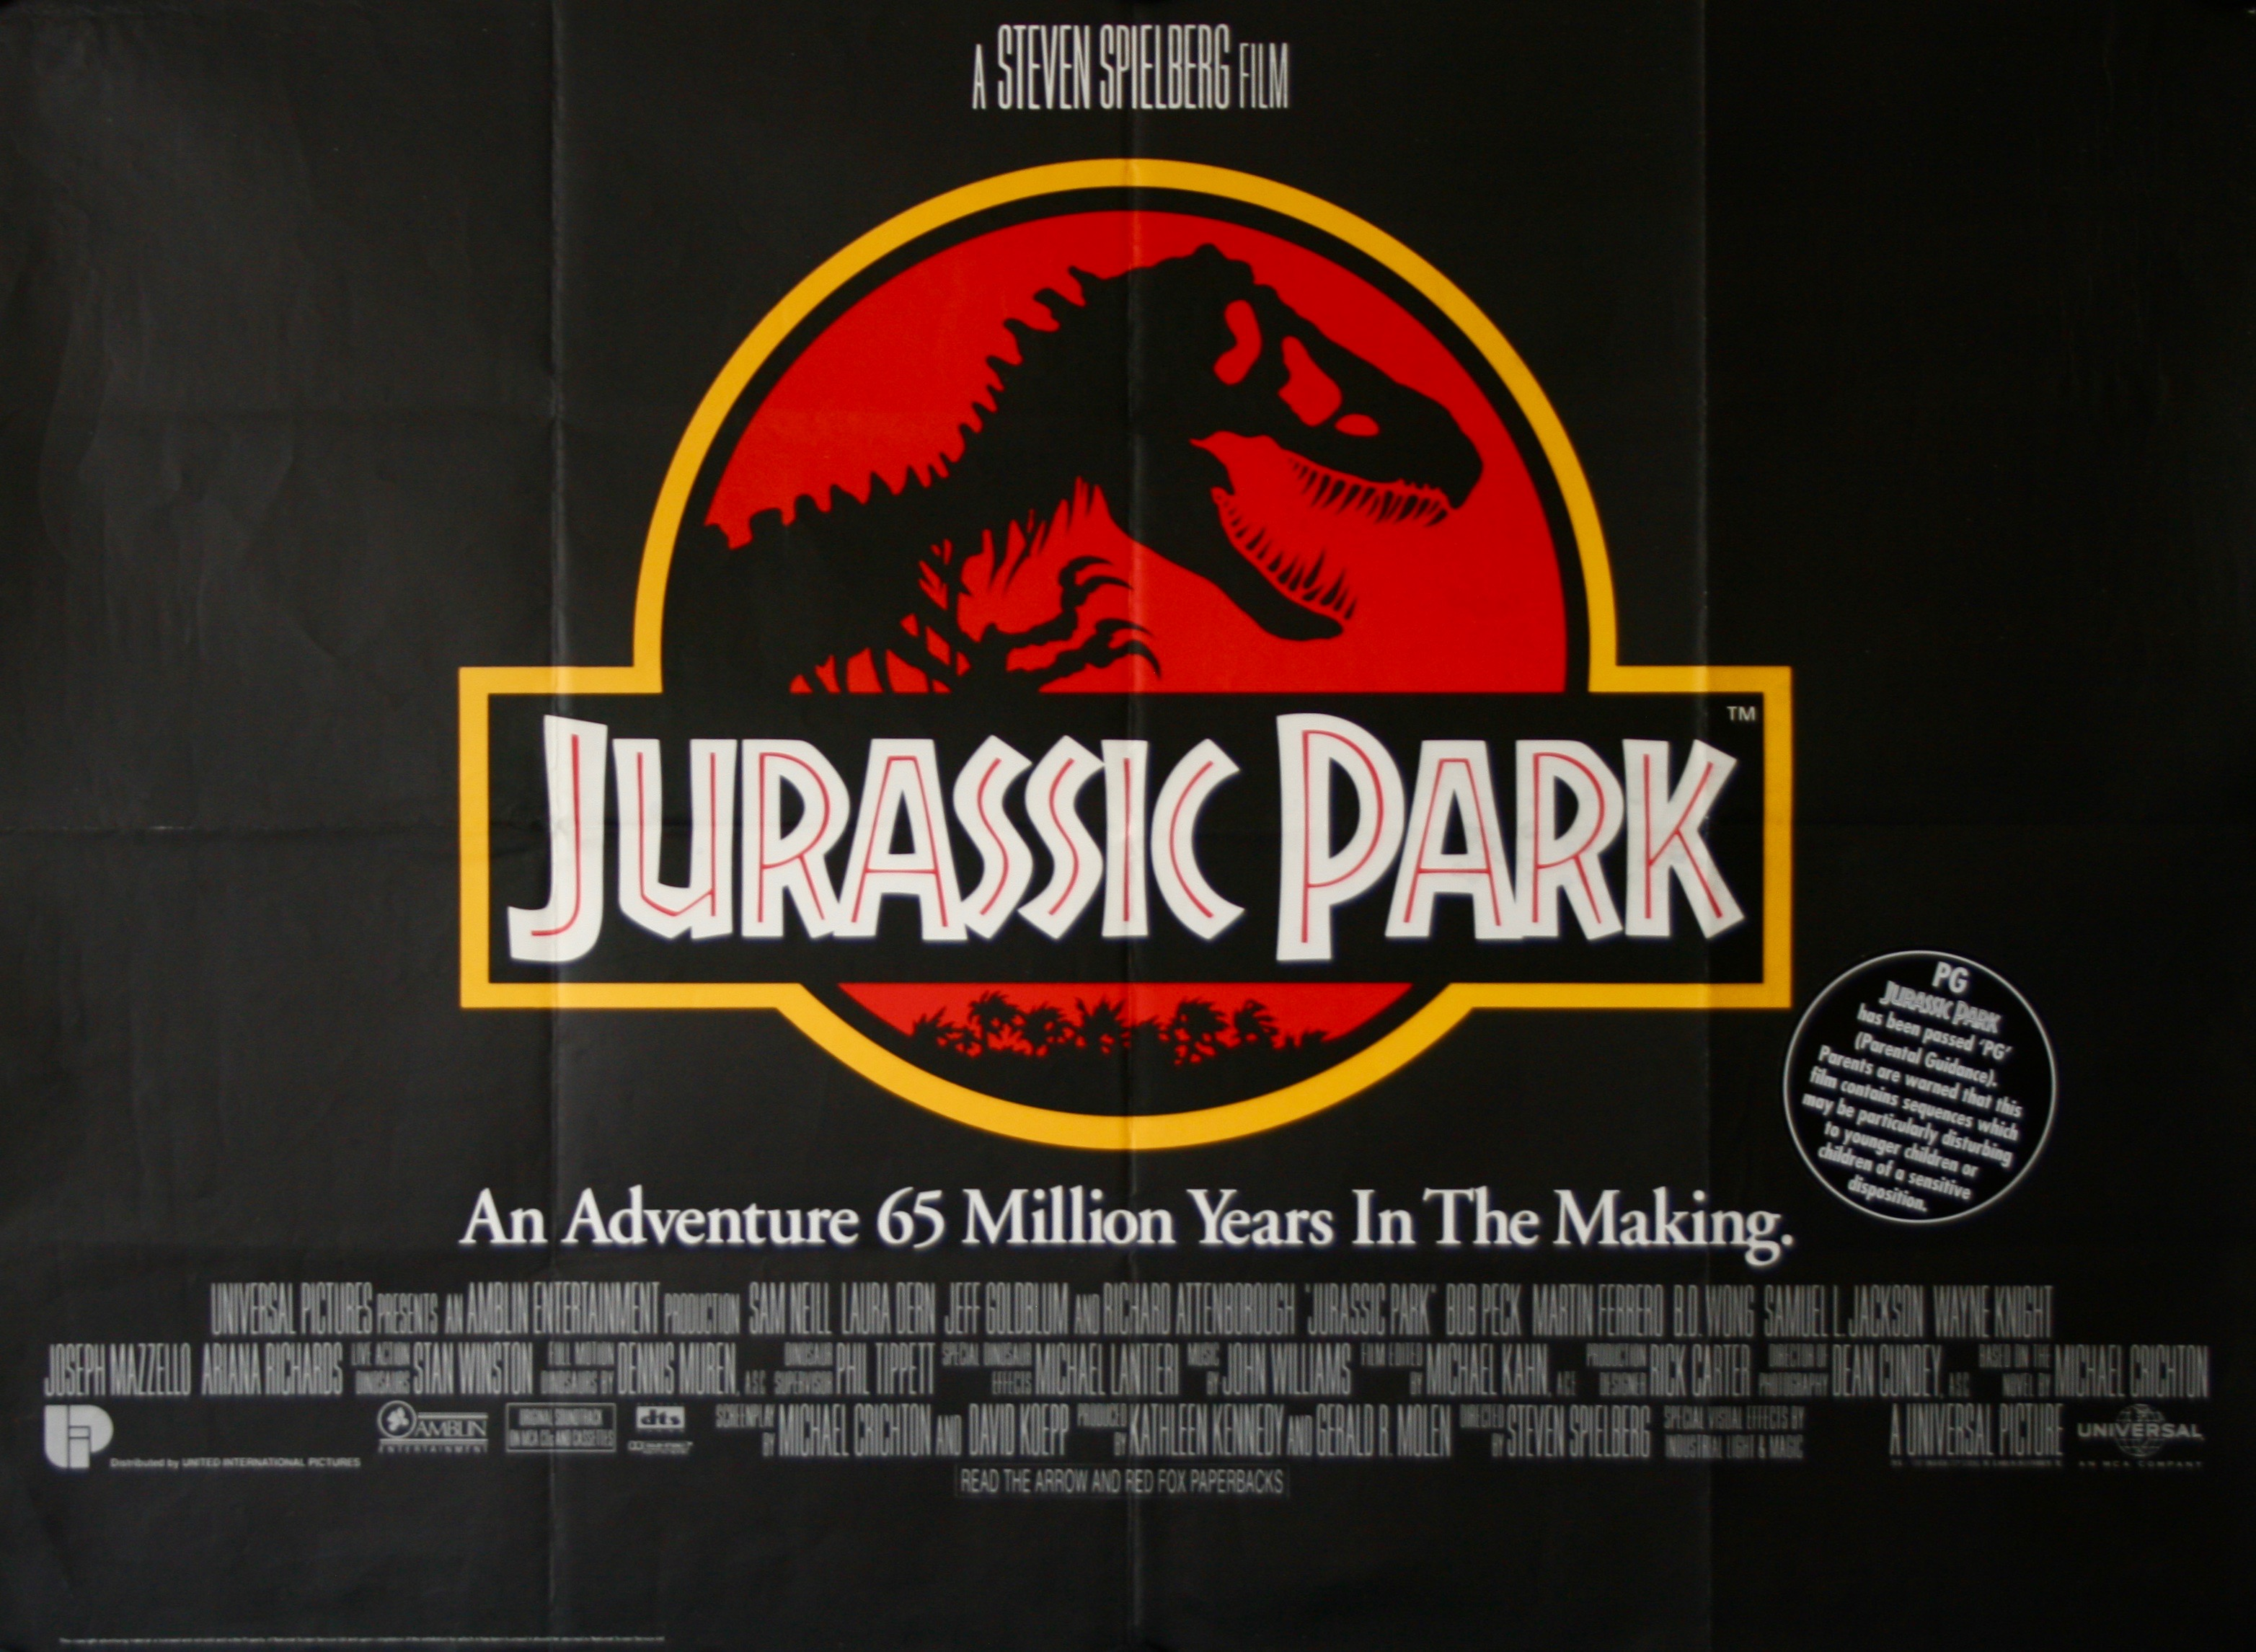 Park Jurassic movie poster images